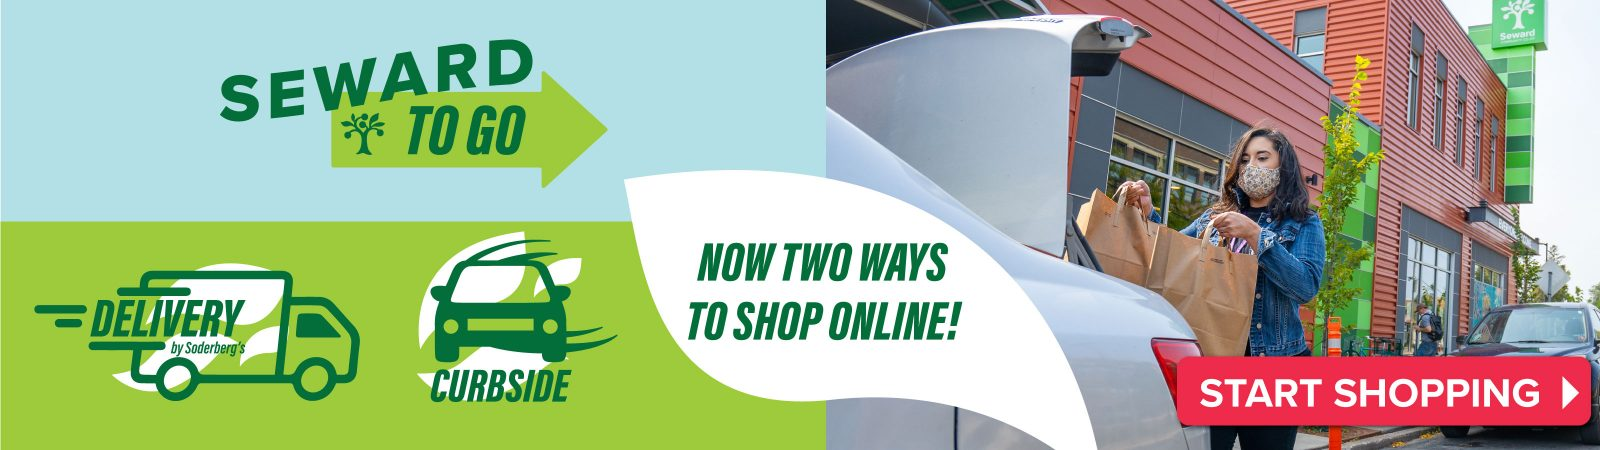 Shop Online with Seward To Go